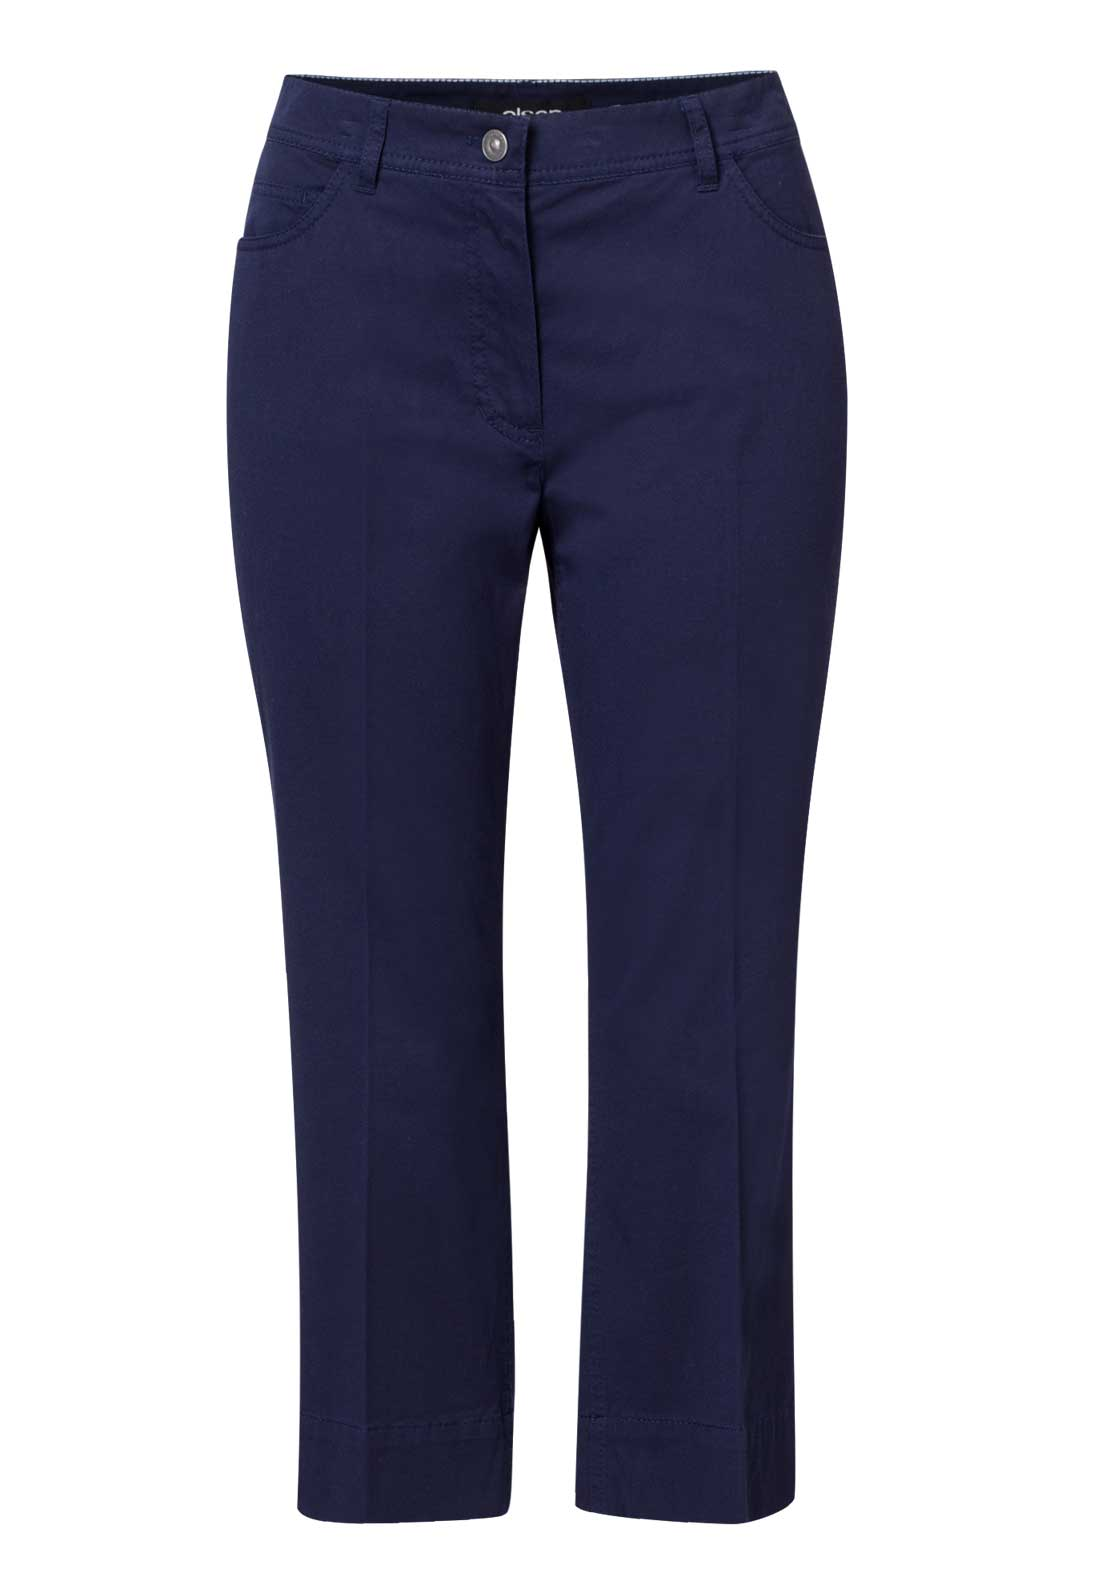 Olsen Lisa Cotton Cropped Trousers Navy